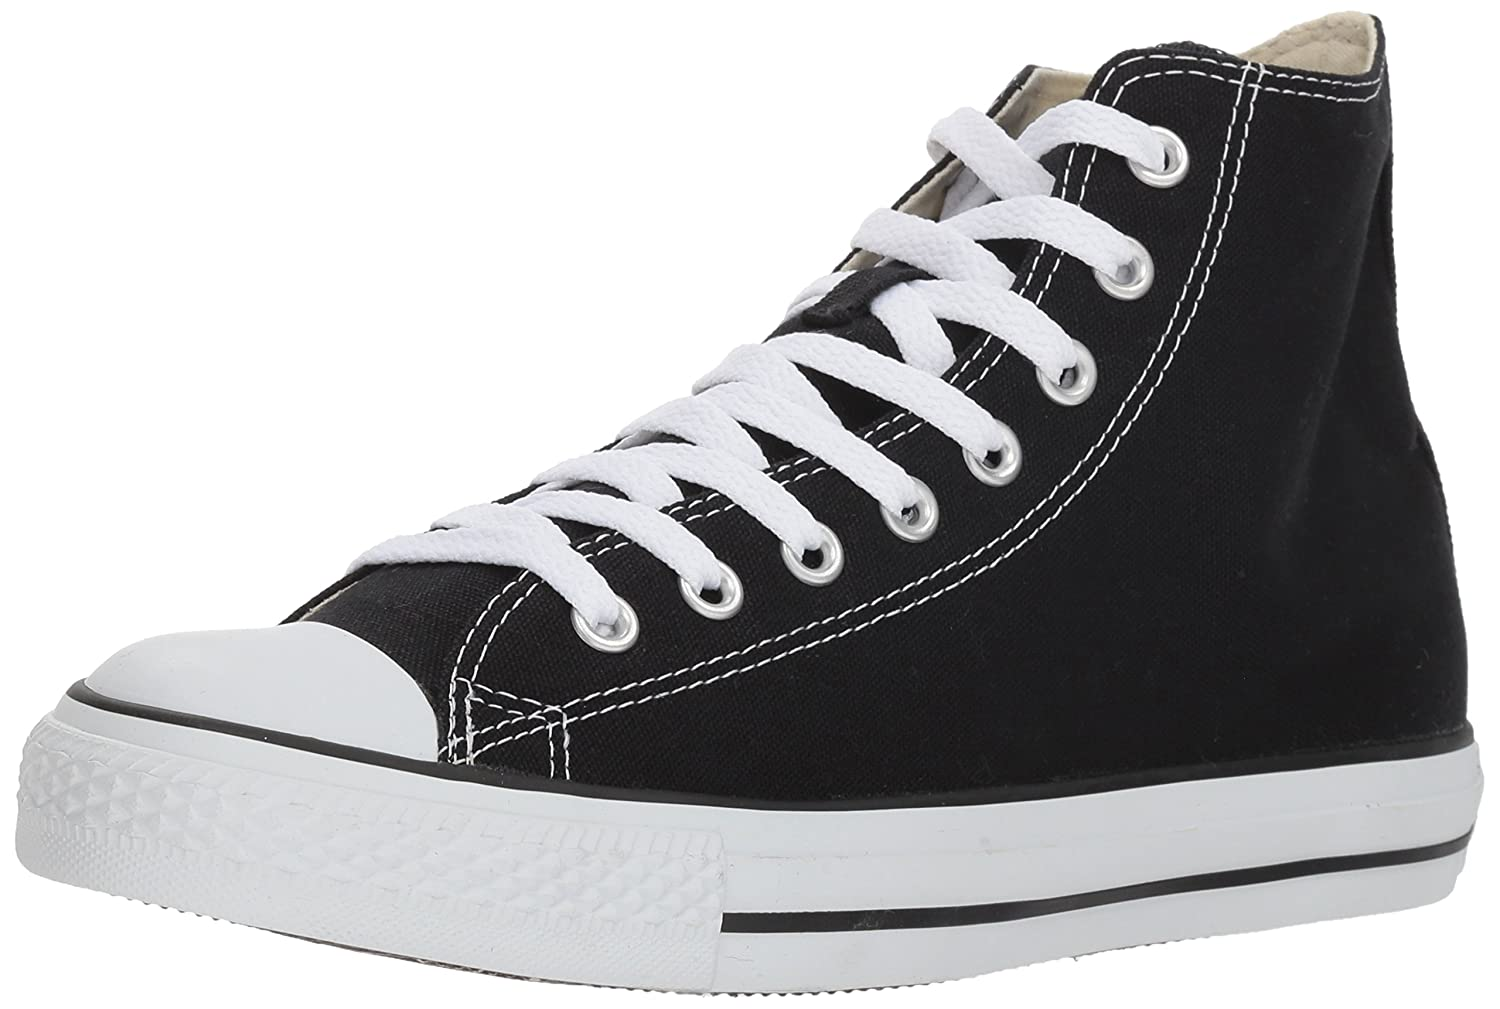 Converse Unisex Chuck Taylor All-Star High-Top Casual Sneakers in Classic Style and Color and Durable Canvas Uppers B075TRZ6YS 7 B(M) US Women / 5 D(M) US Men|Black